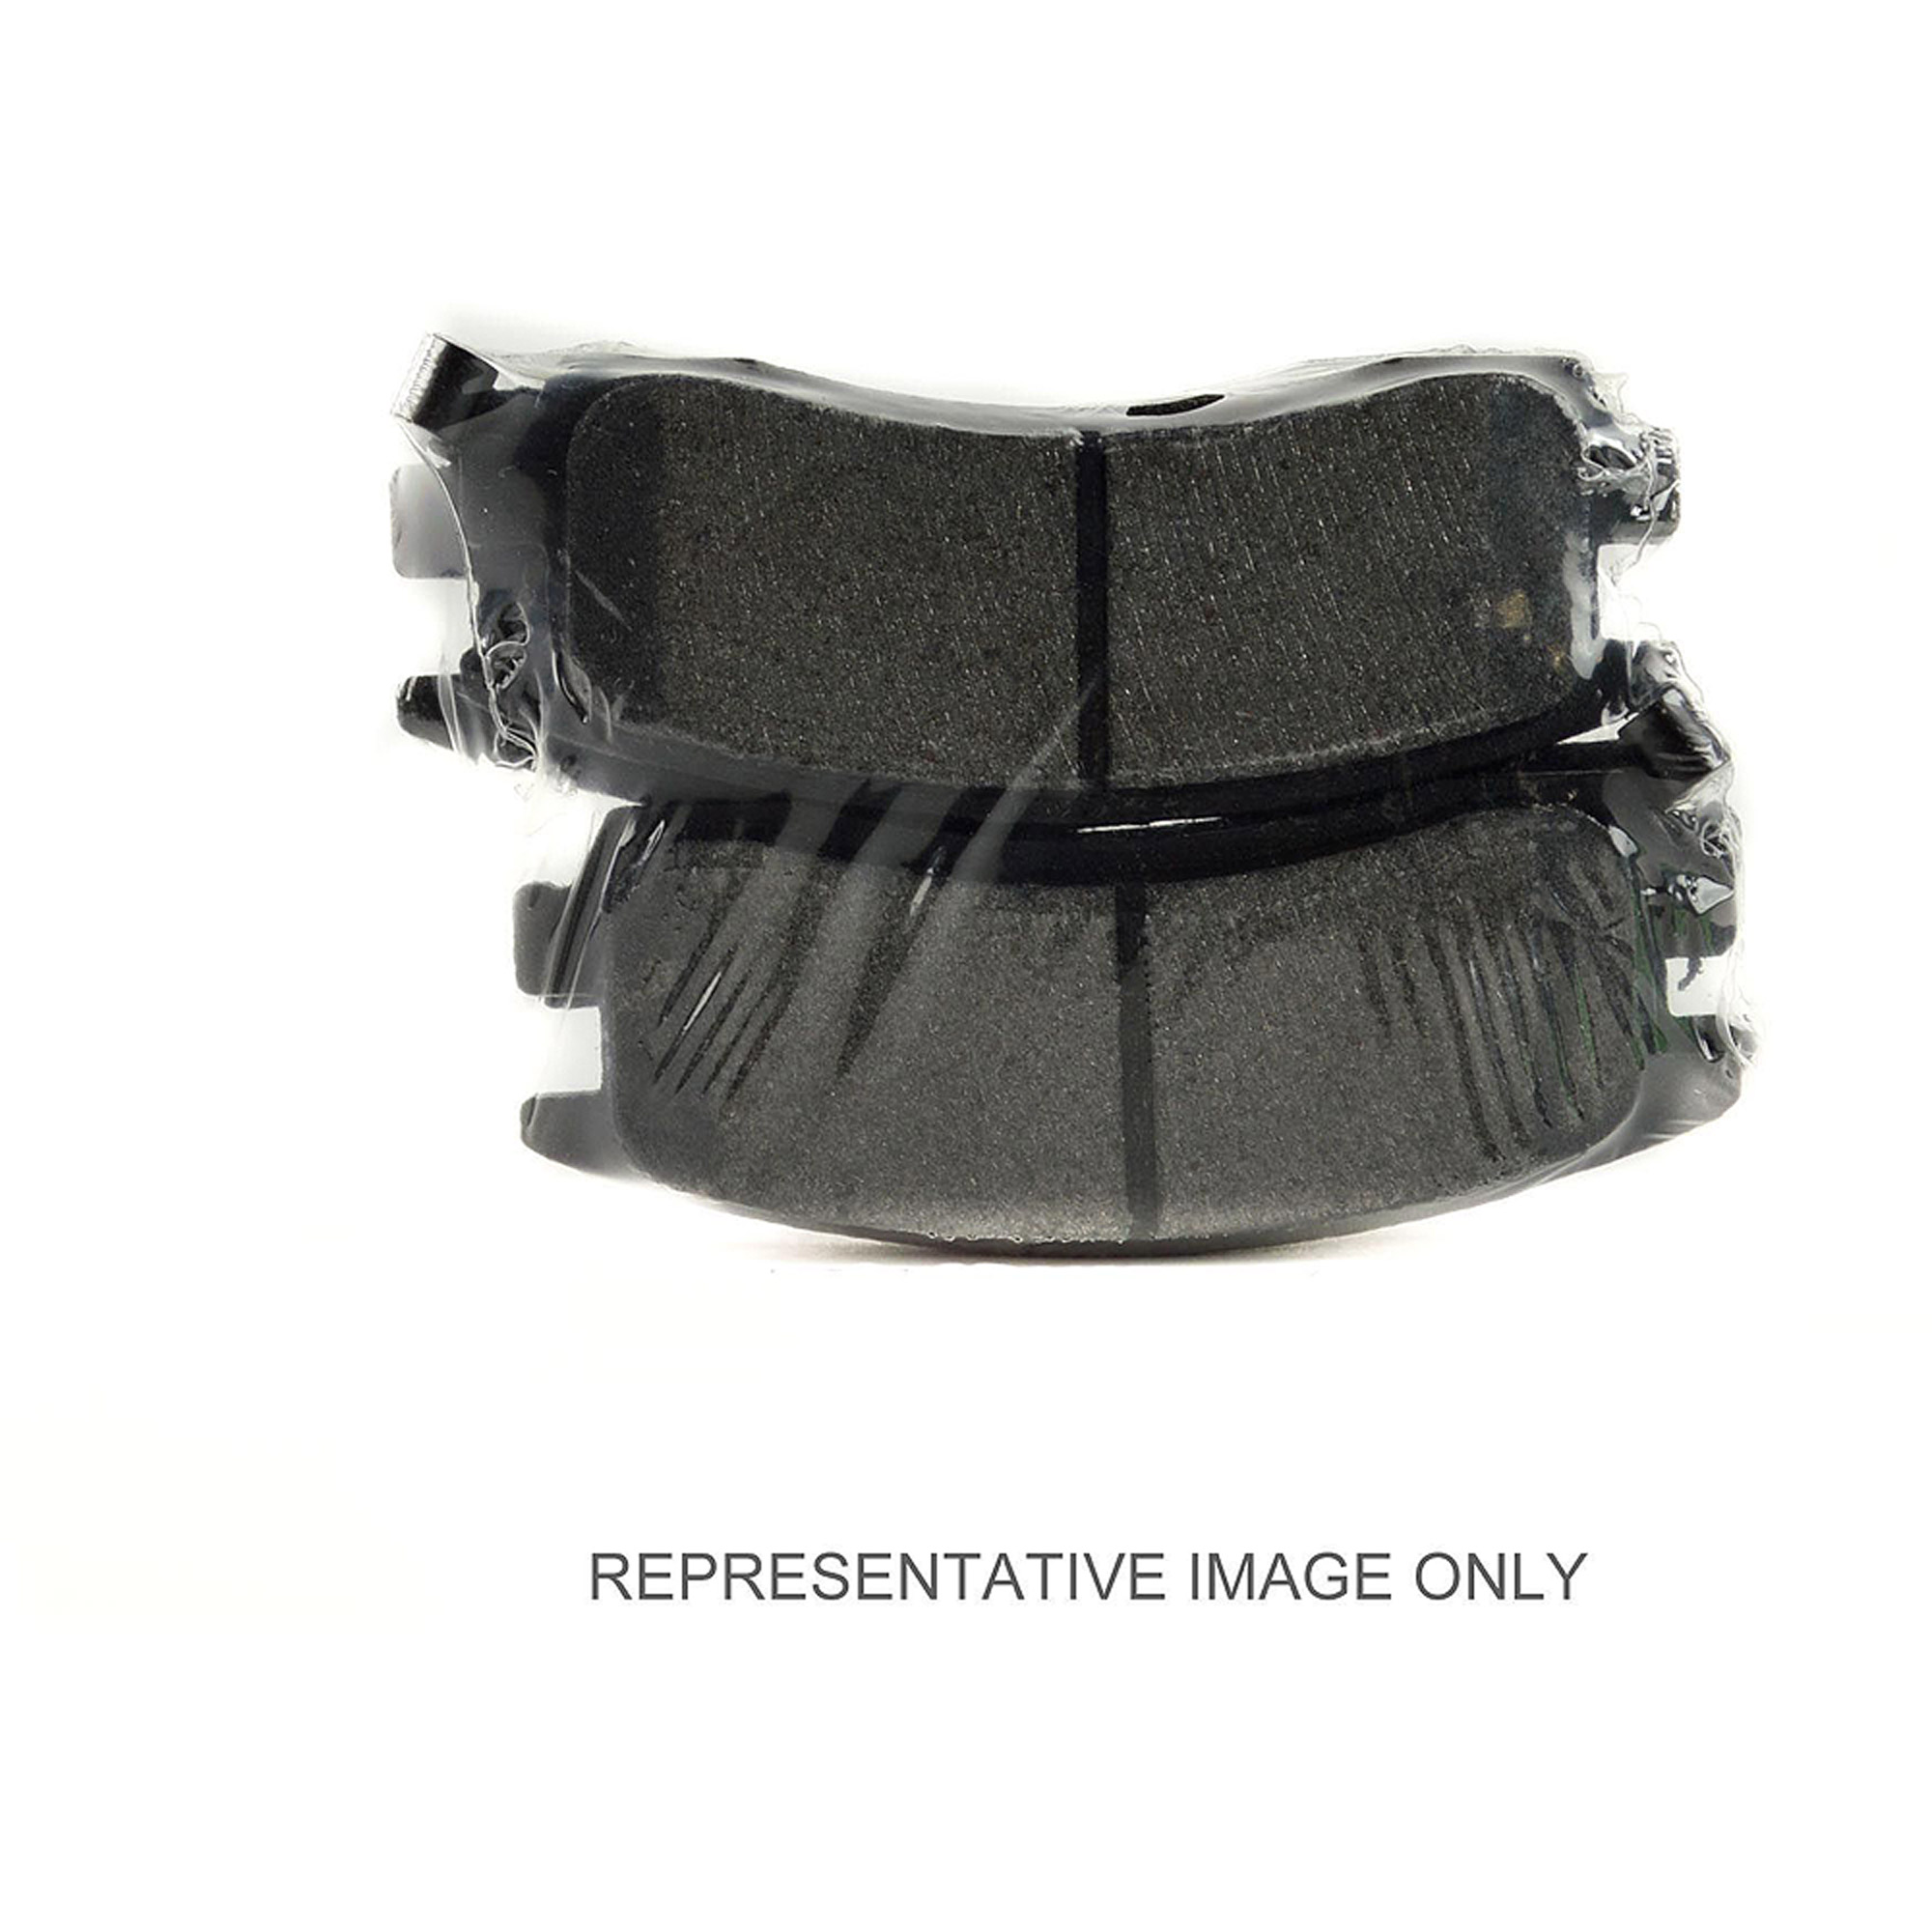 Bendix Brake Pad Kit, #Mrd376 by Bendix